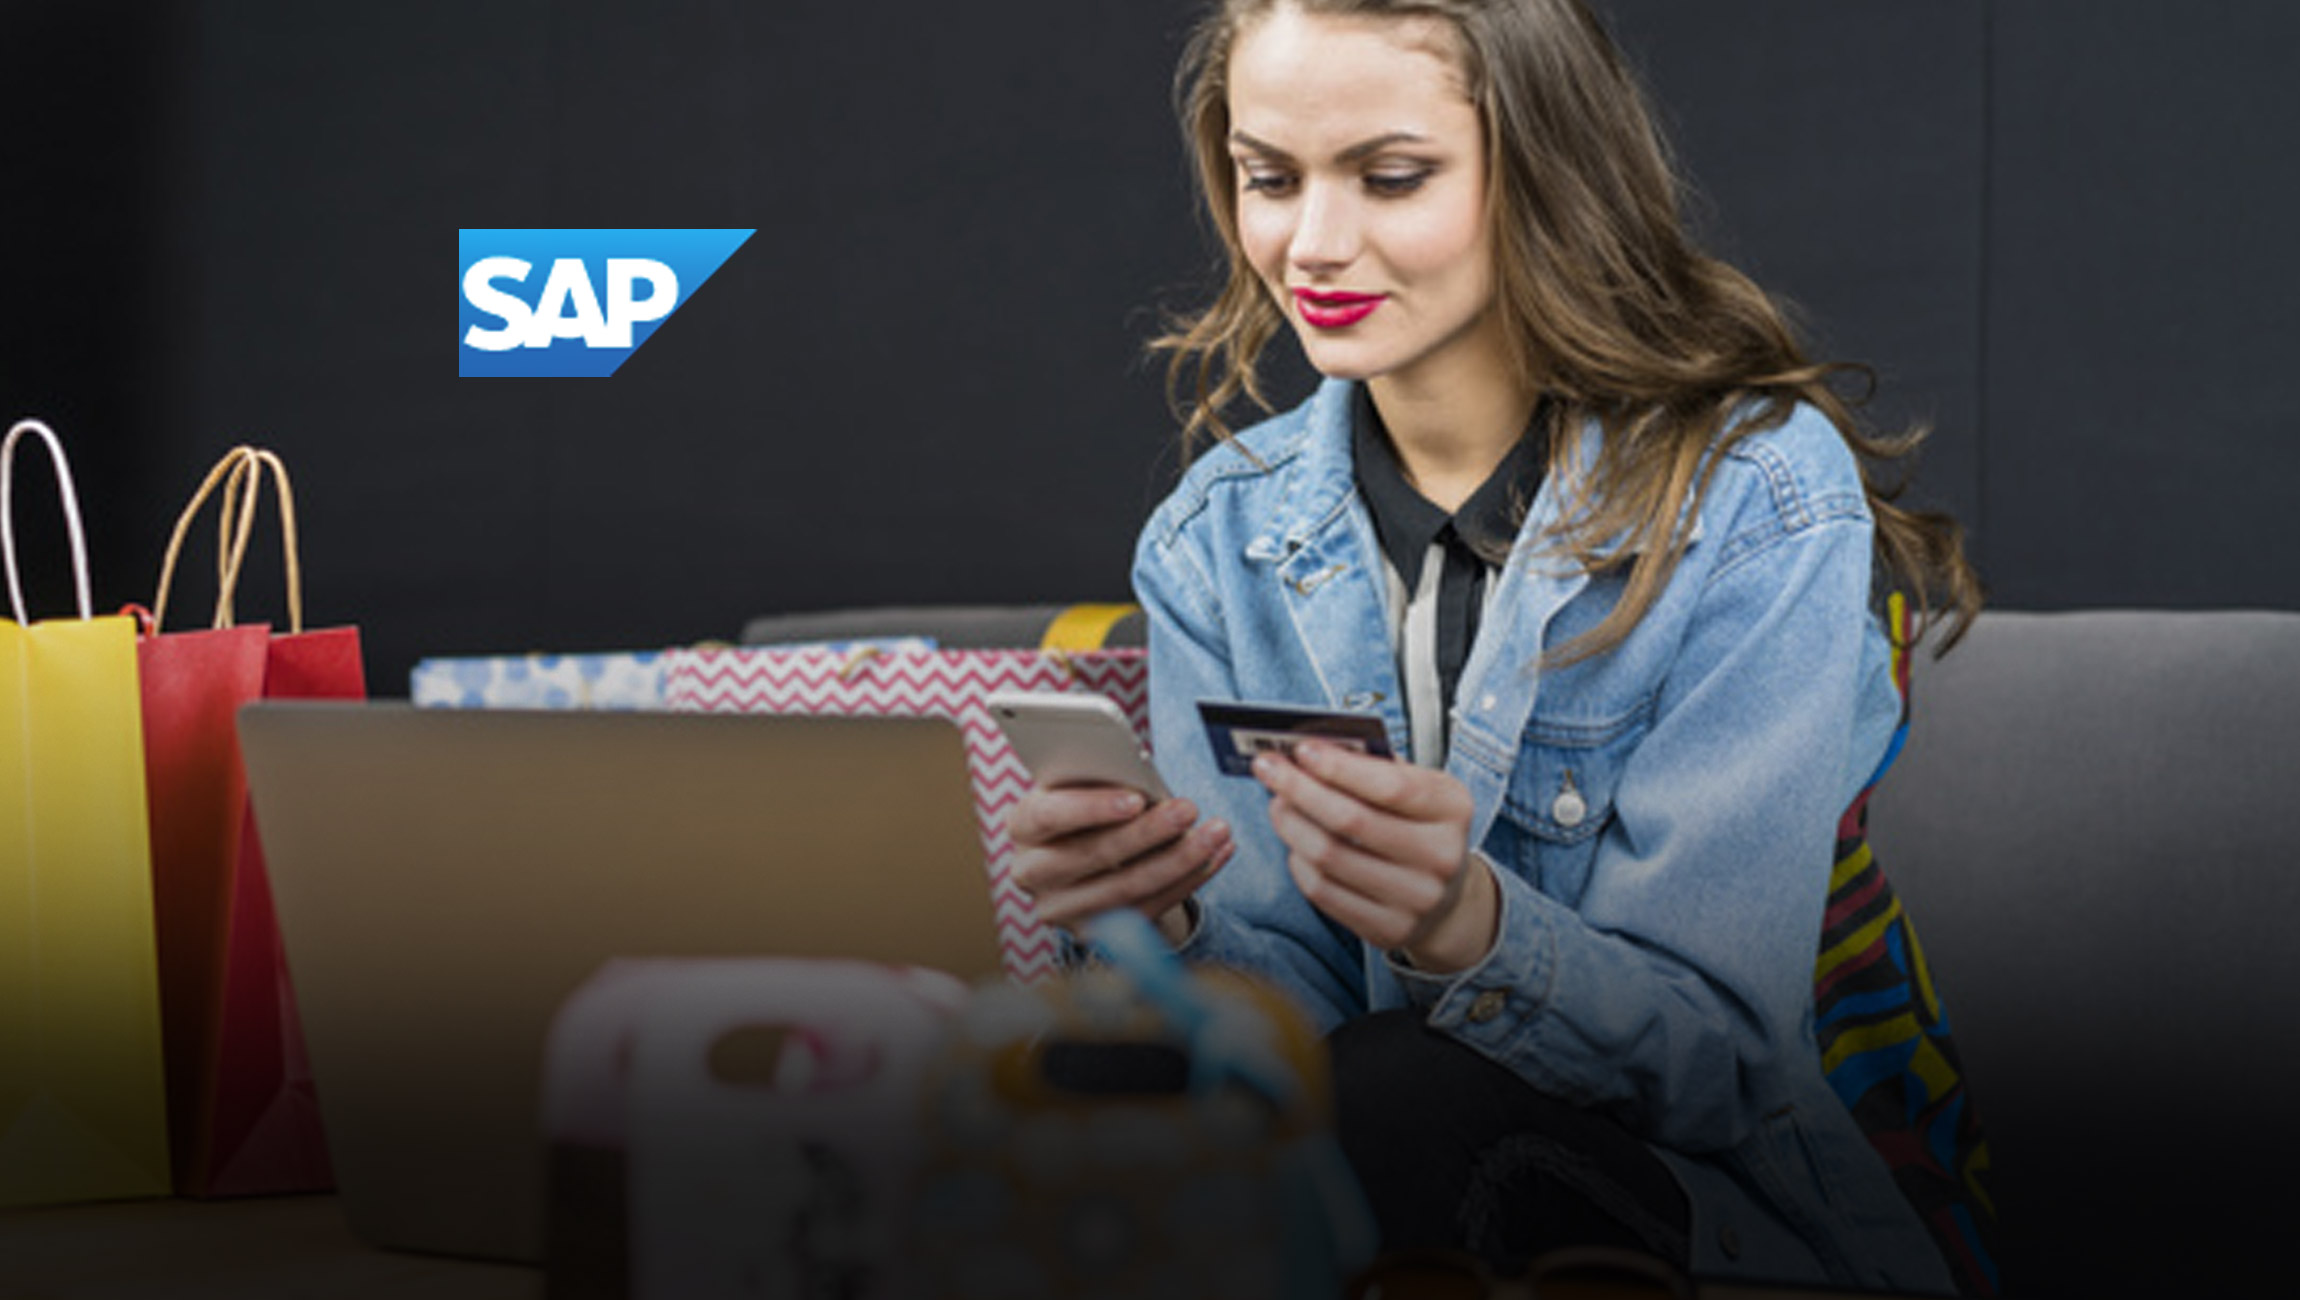 SAP SE: Strong Double-Digit Growth in EPS and Cash Flow